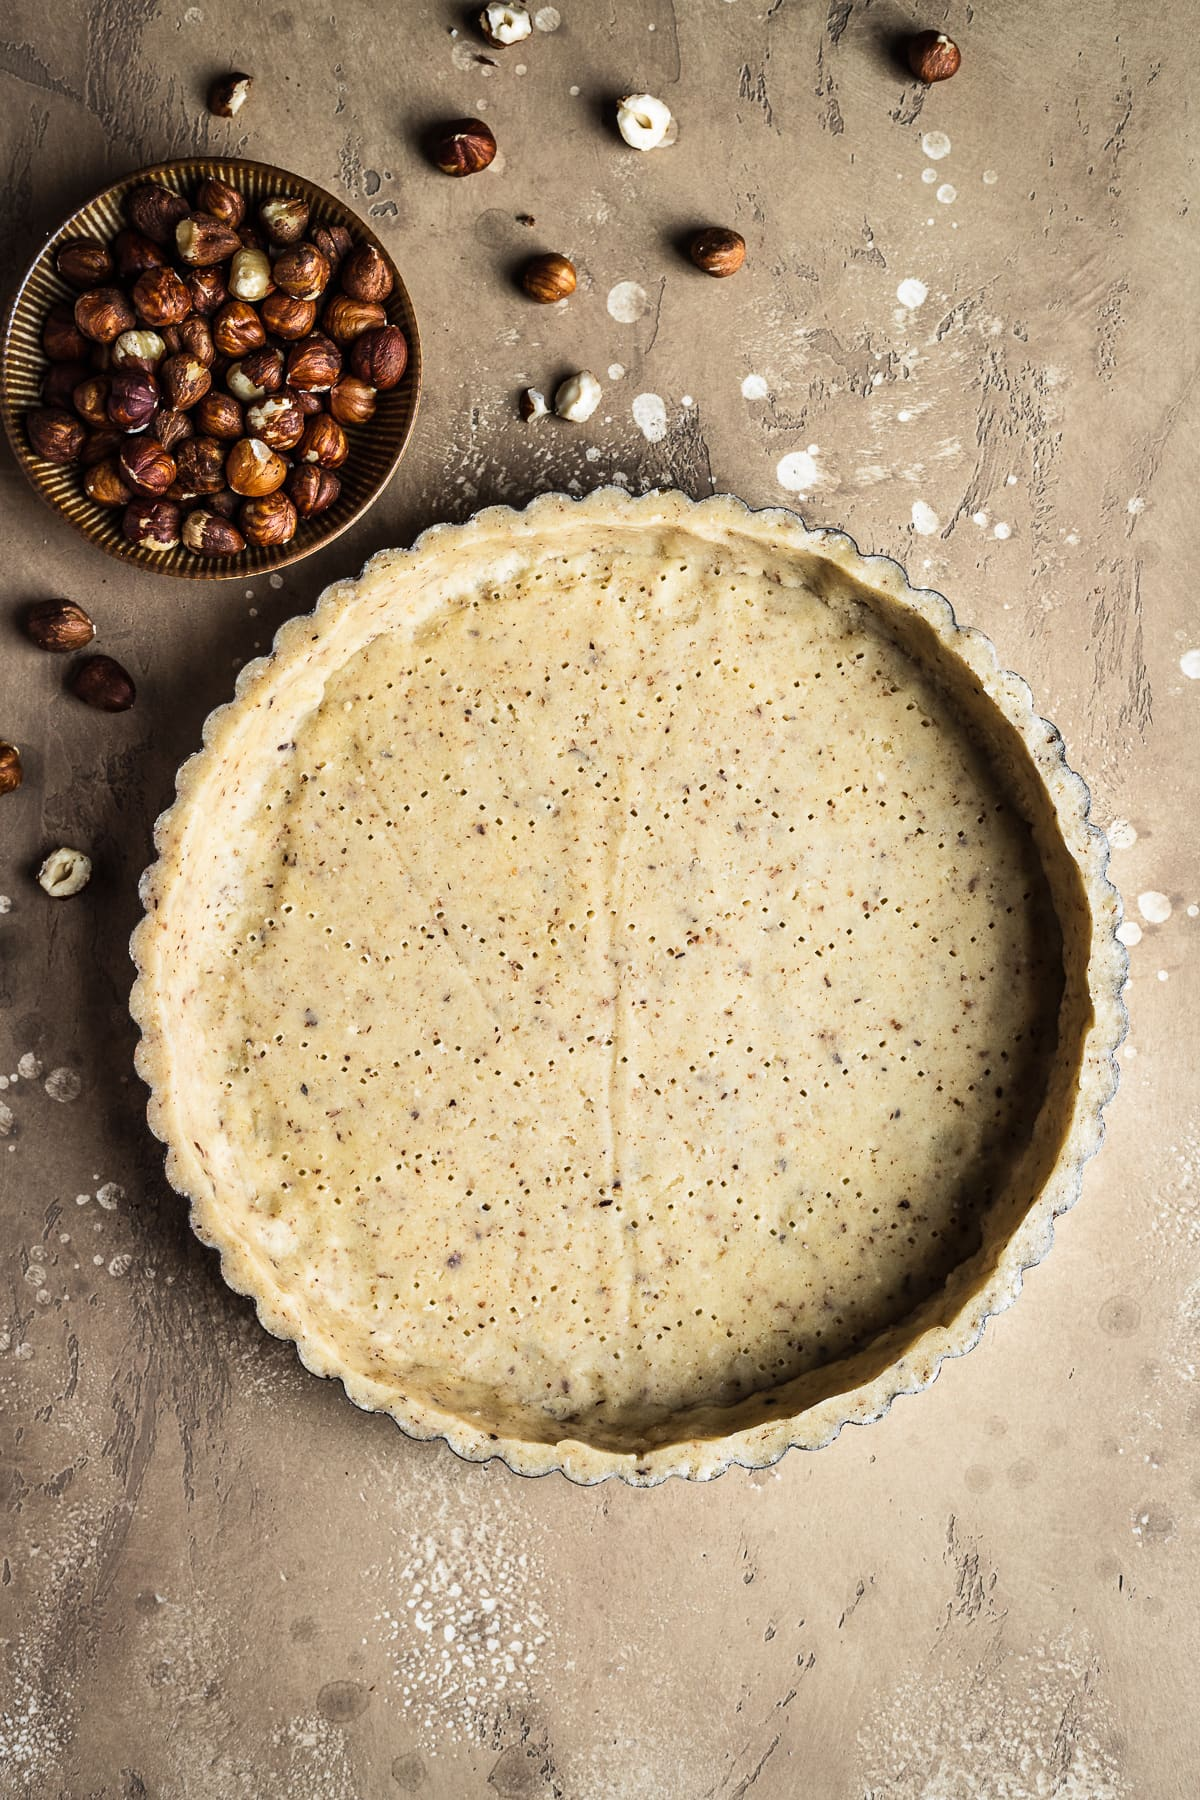 An unbaked round tart crust with a small bowl of hazelnuts at top left, resting on a textured speckled tan background.